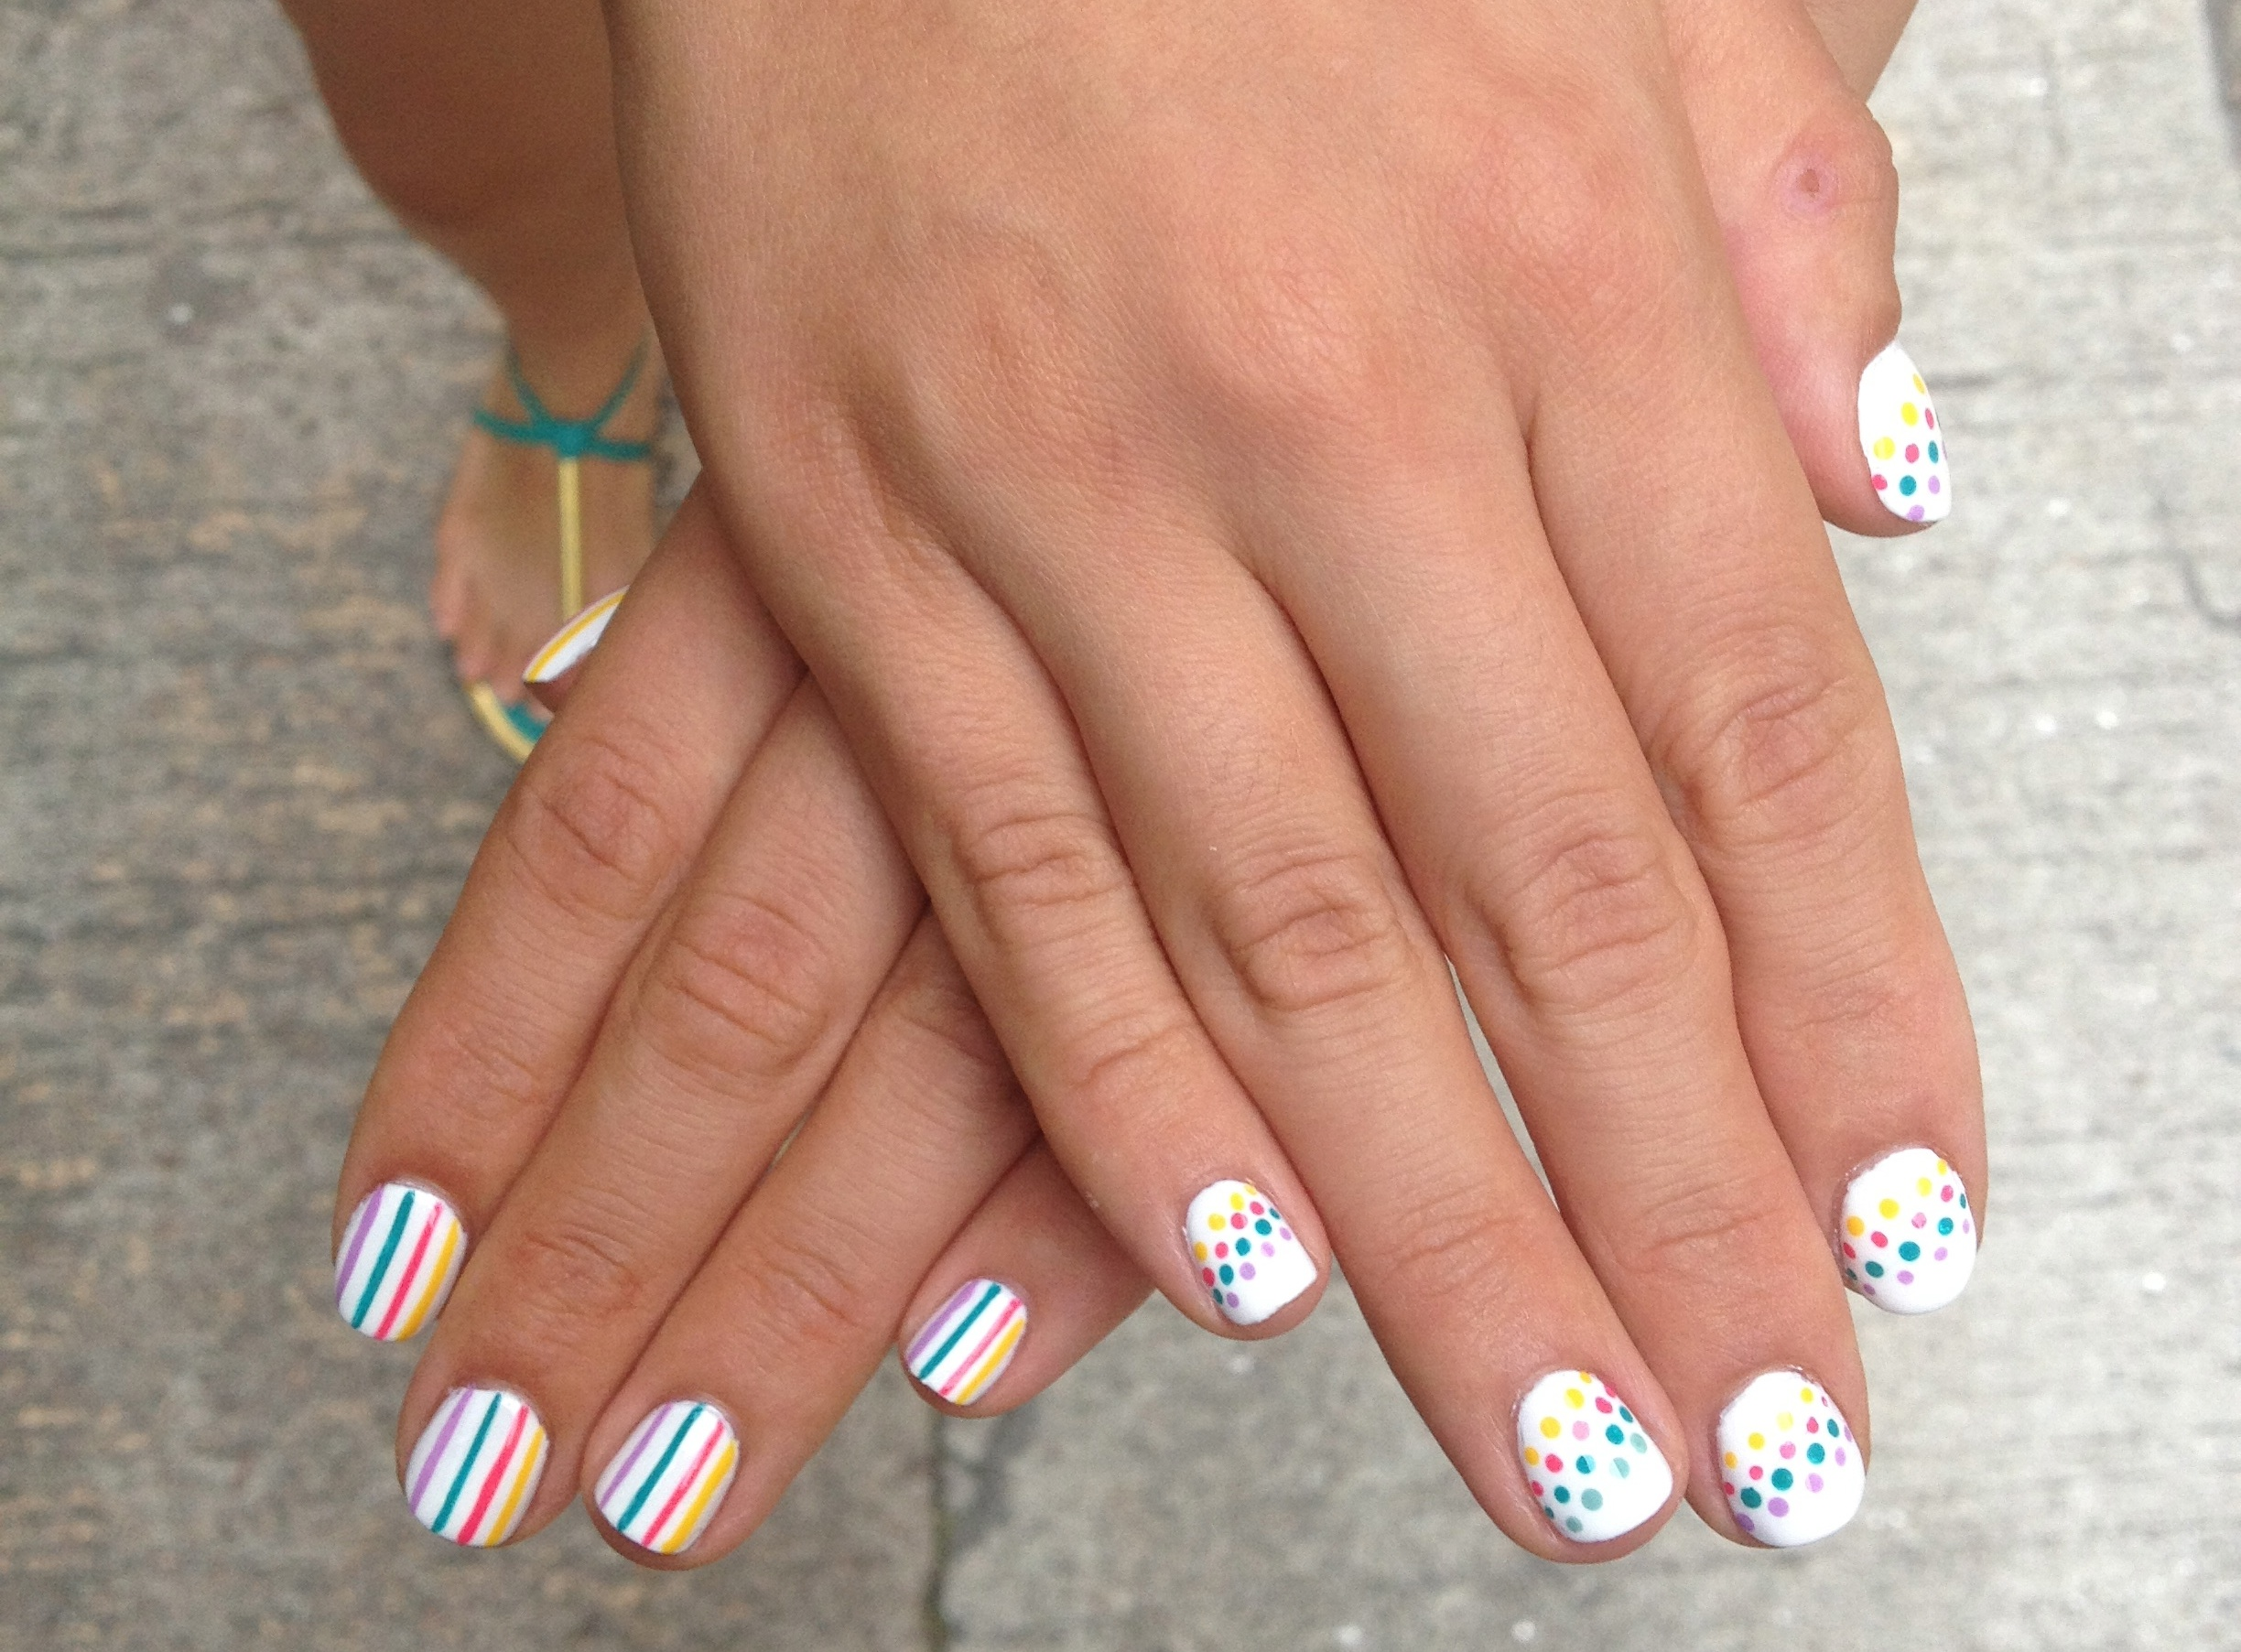 25 best ideas about crazy nail art on pinterest simple nail water the nail library review nailing it in hong kong through the wacky nail art prinsesfo Image collections